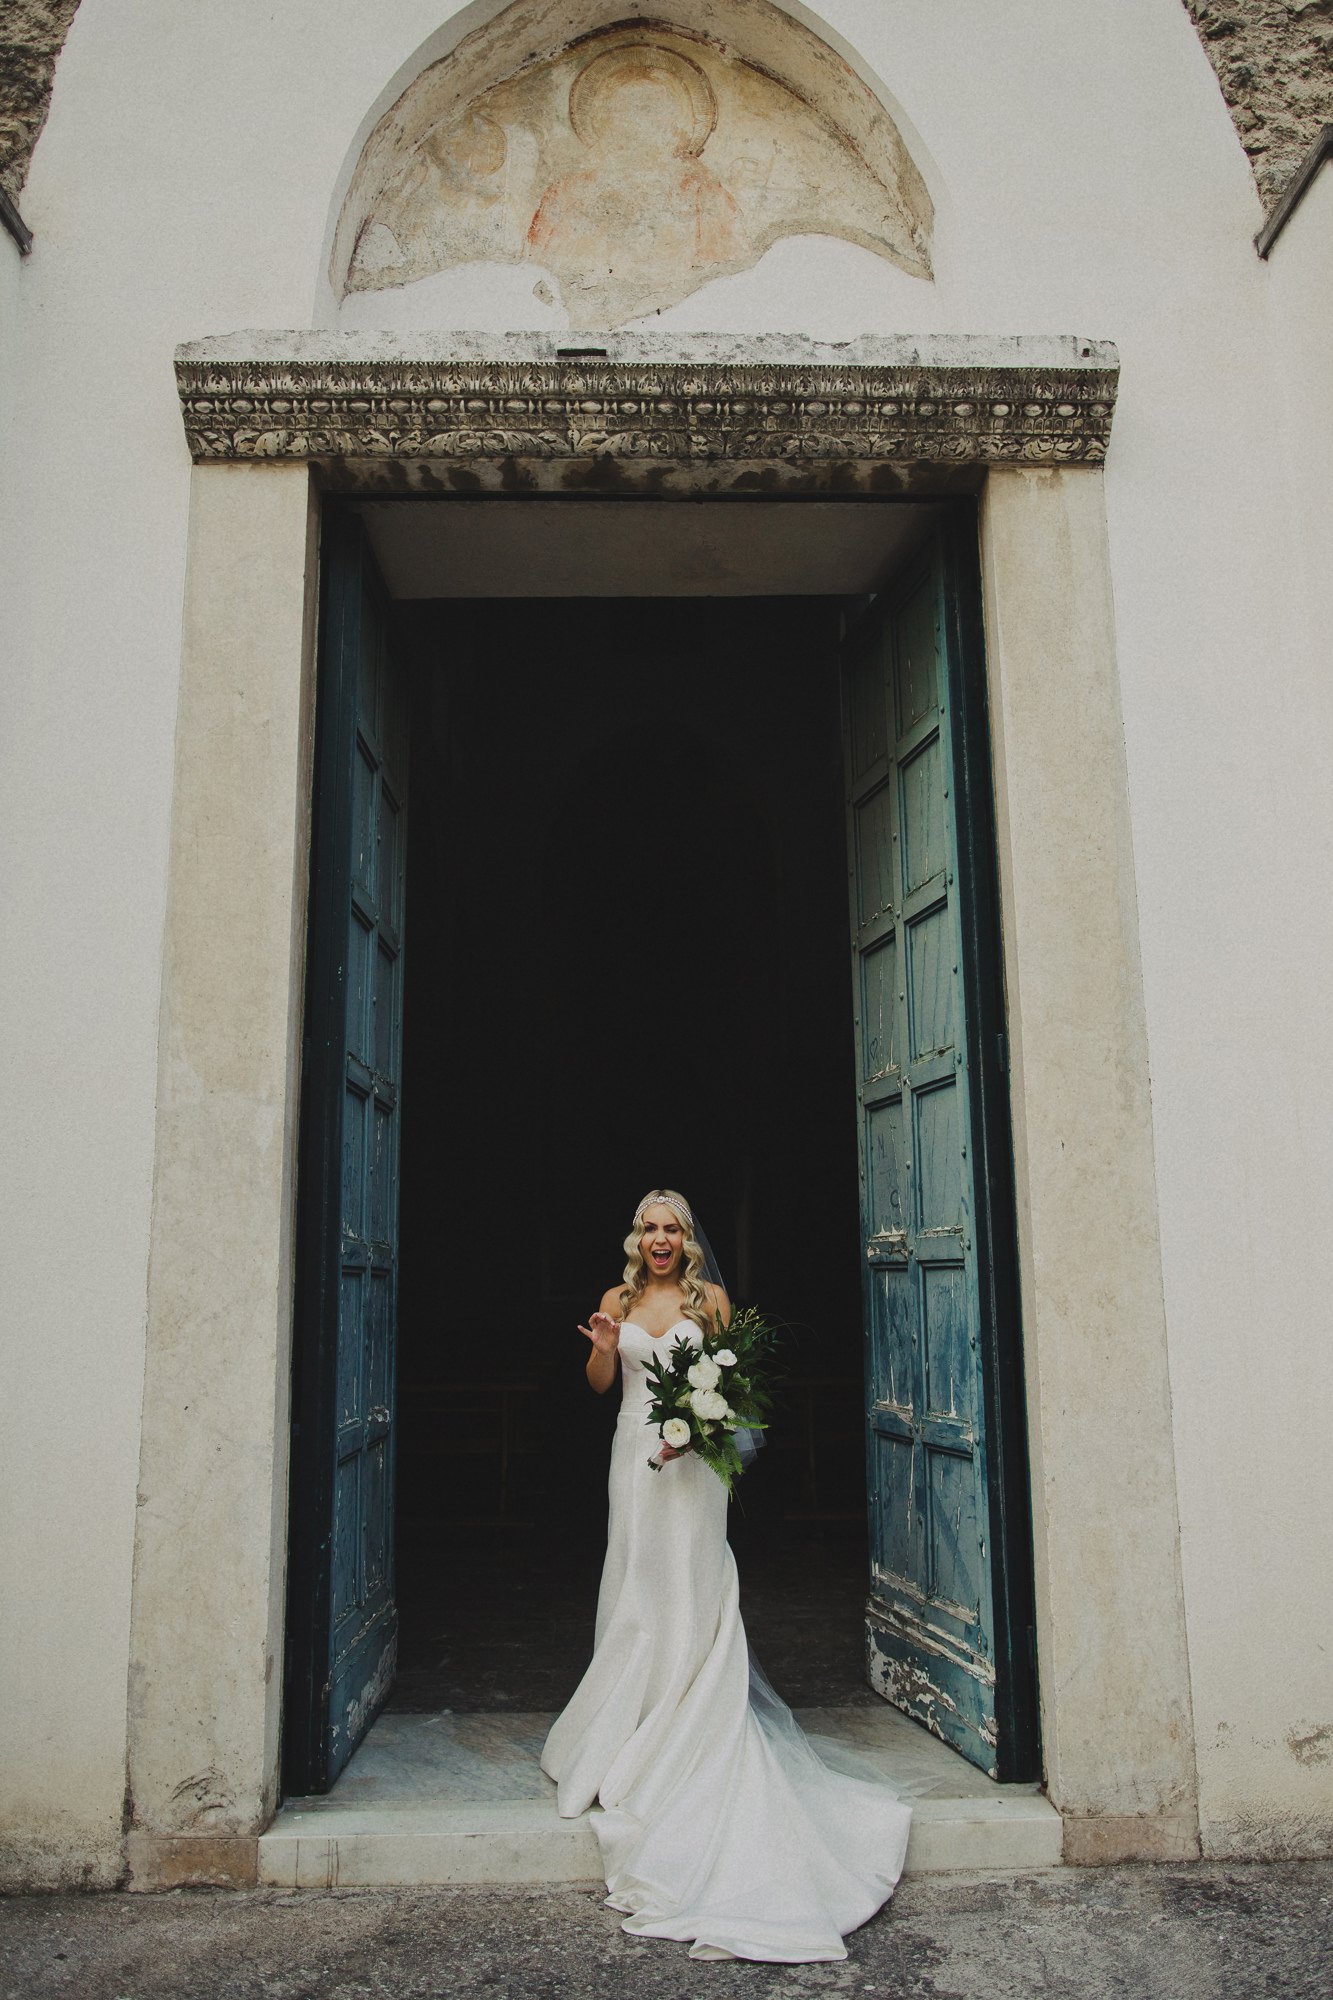 Bridal portrait in doorway Dan O'day australia wedding photographer